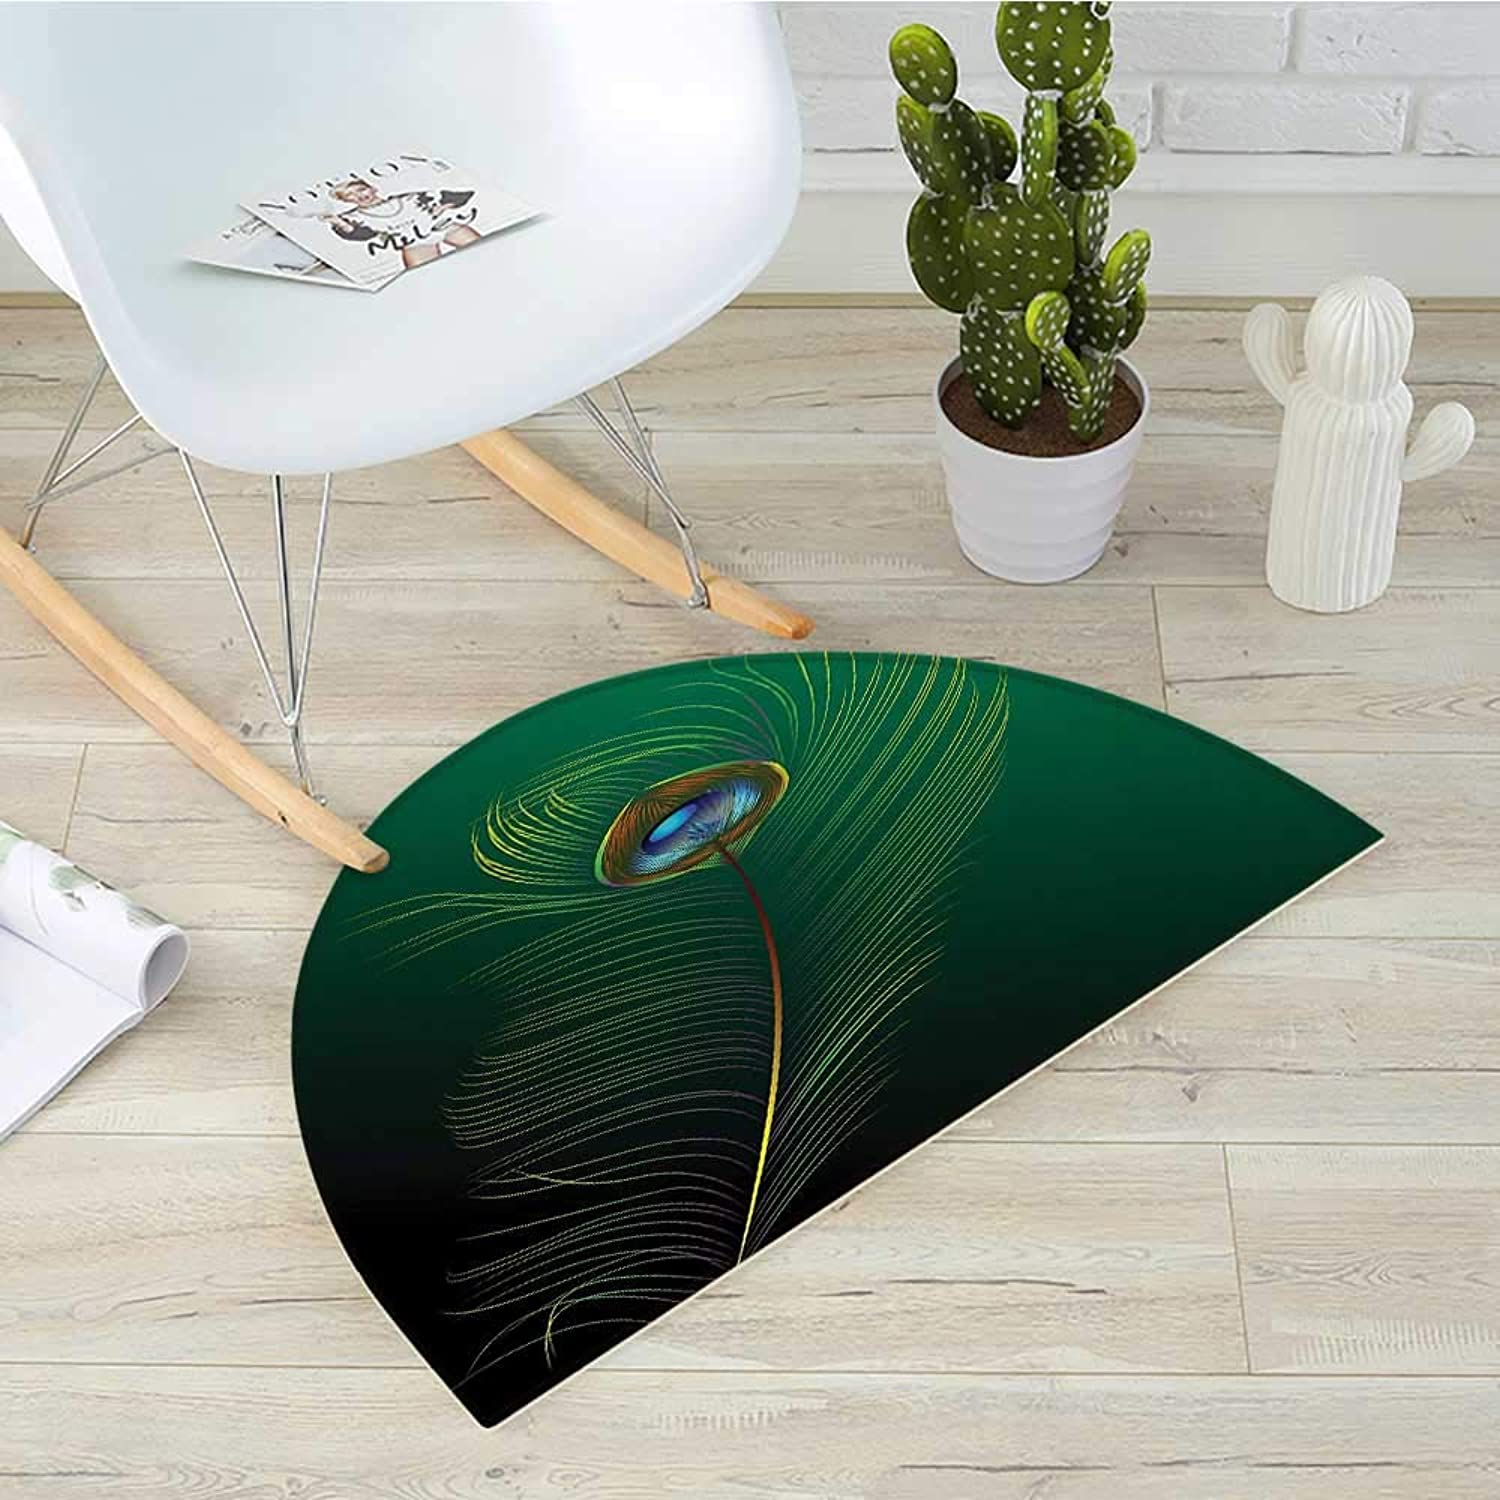 Peacock Half Round Door mats Peacock Feather Illustration in Simplistic Artistic Style Wild Nature Life Print Bathroom Mat H 35.4  xD 53.1  Green bluee